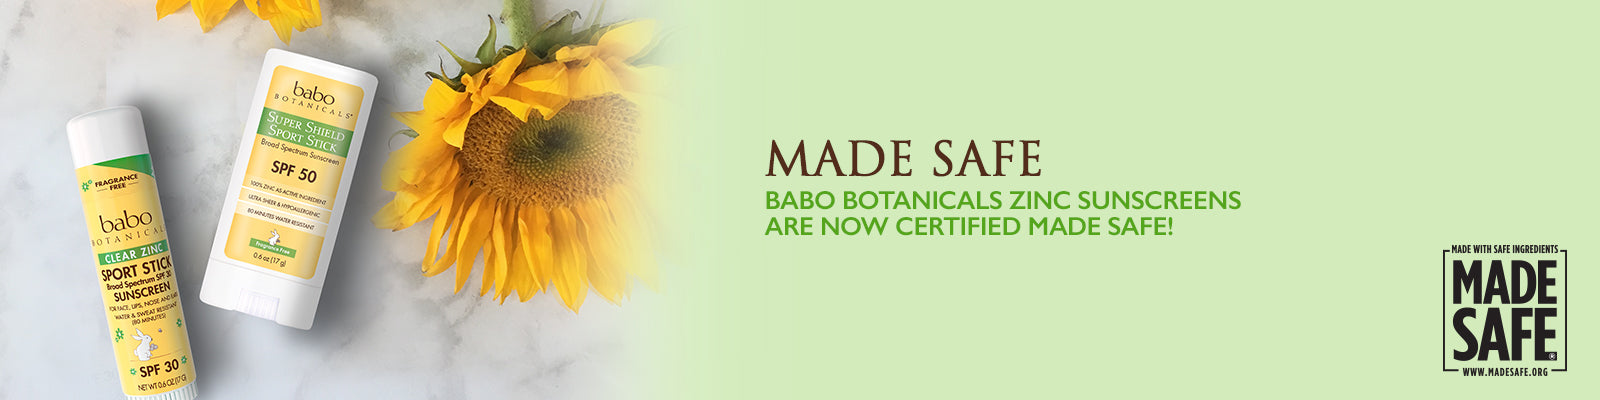 Made Safe Babo Botanicals zinc sunscreens are now certified made safe!